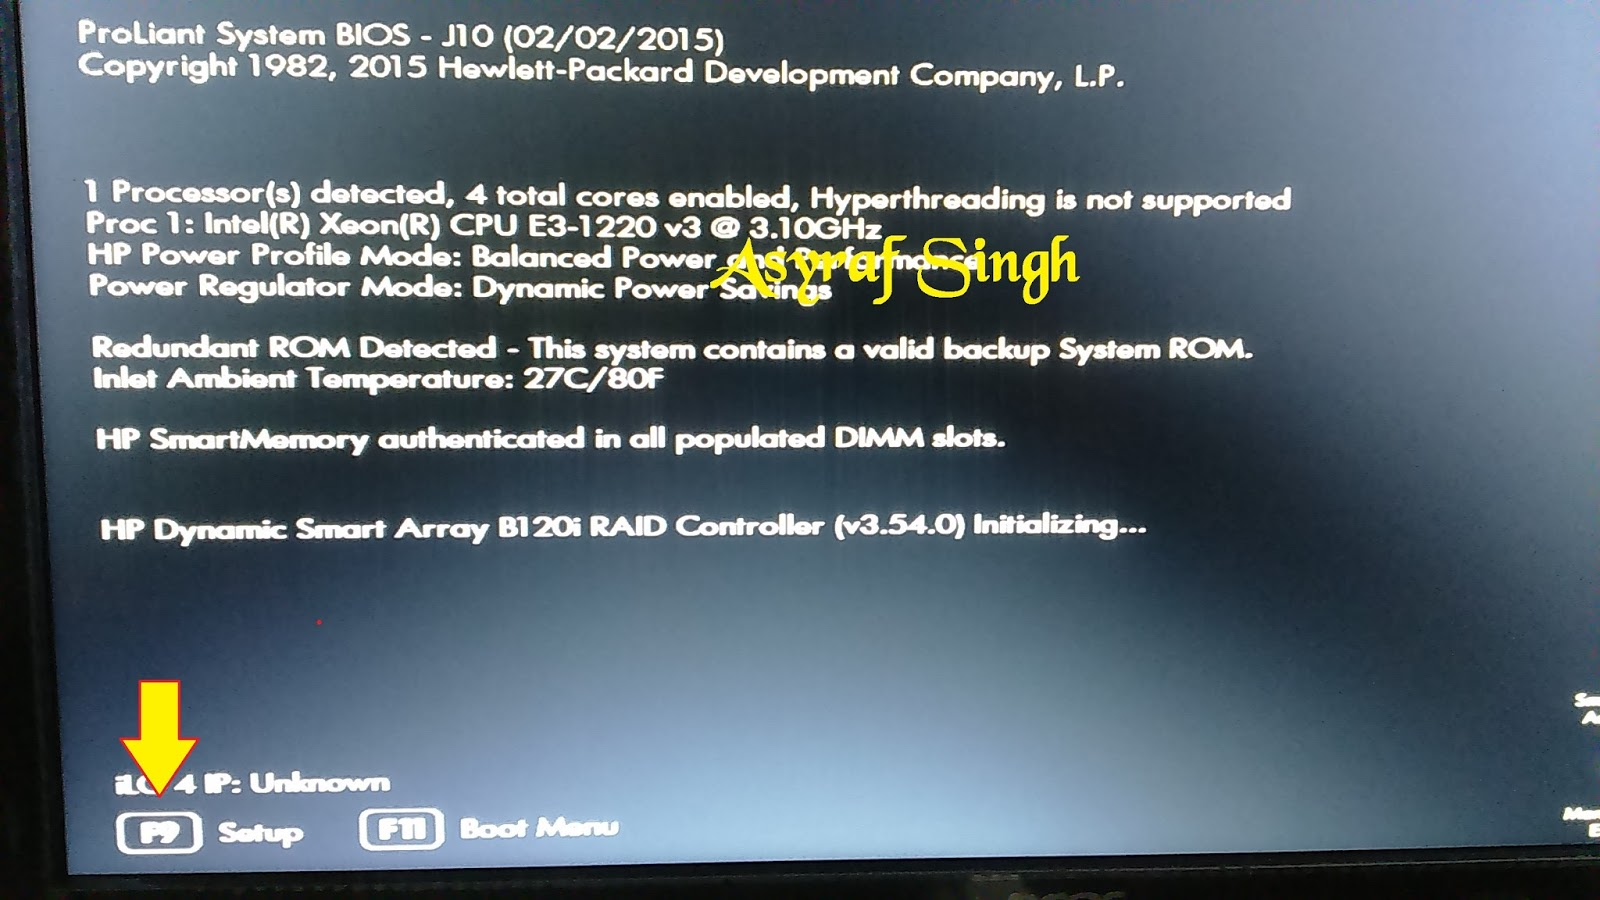 how to update proliant system bios